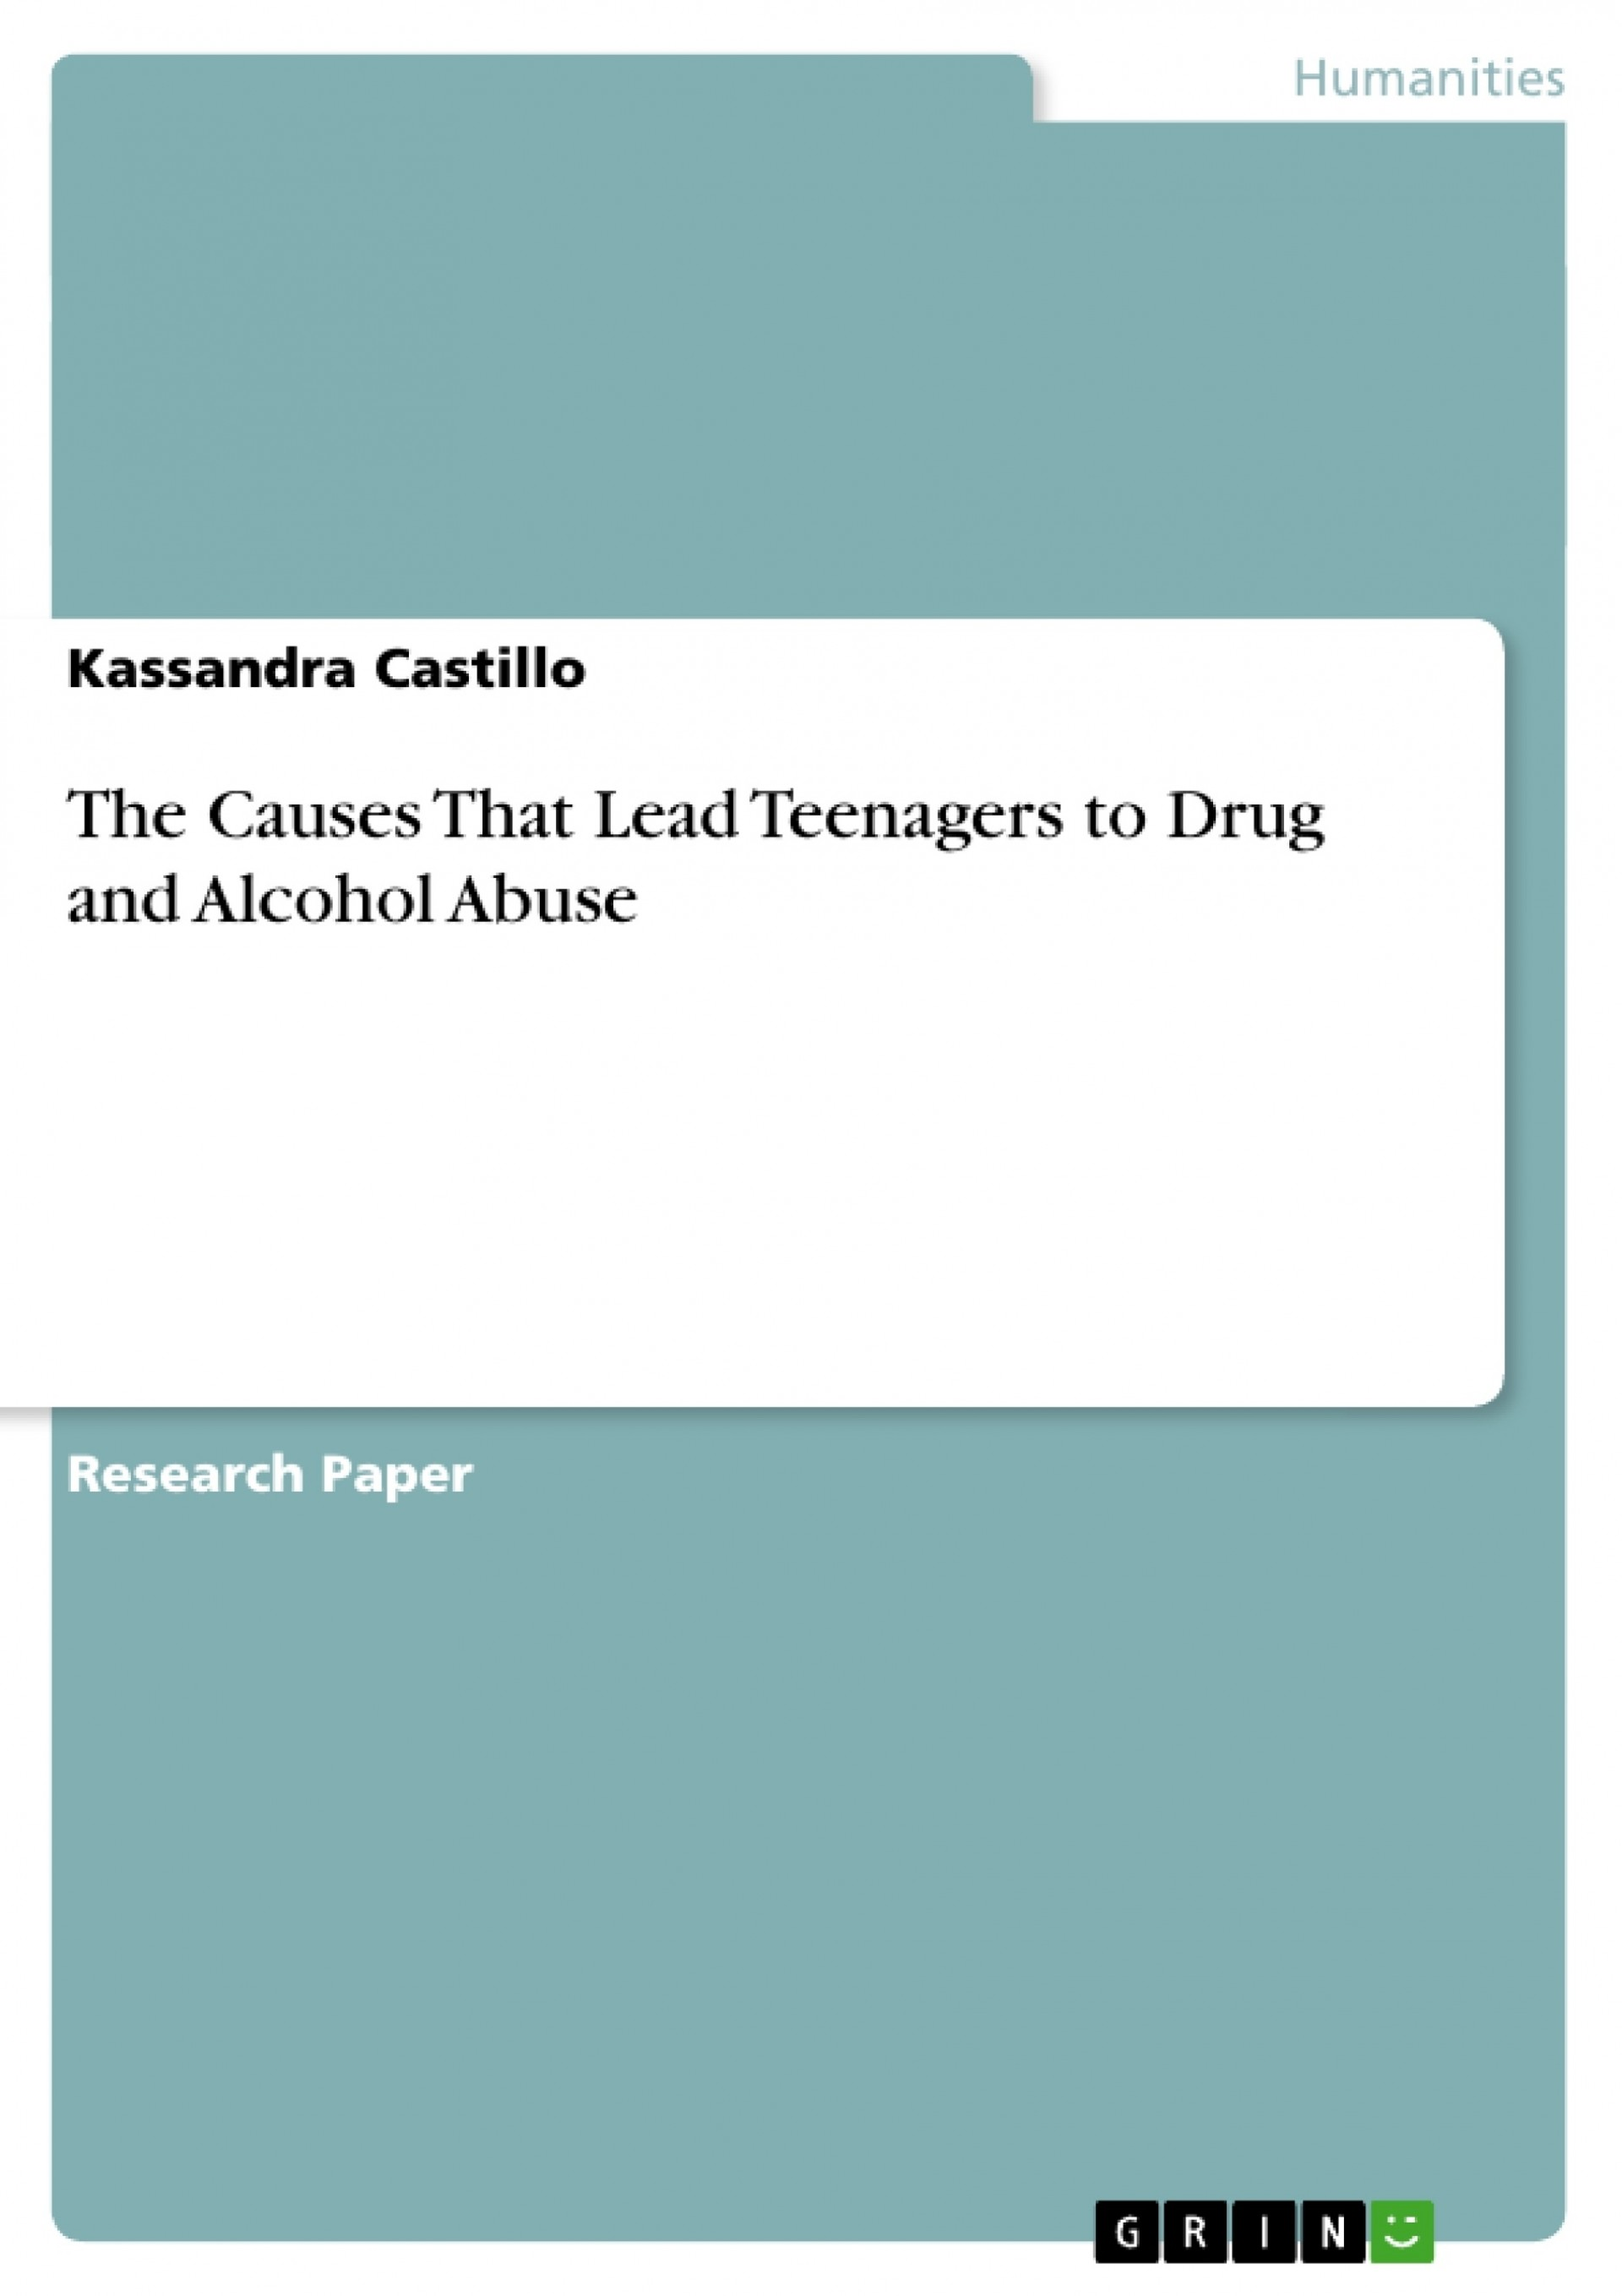 025 125033 0 Essay Example Alcoholism Cause And Fearsome Effect 1920